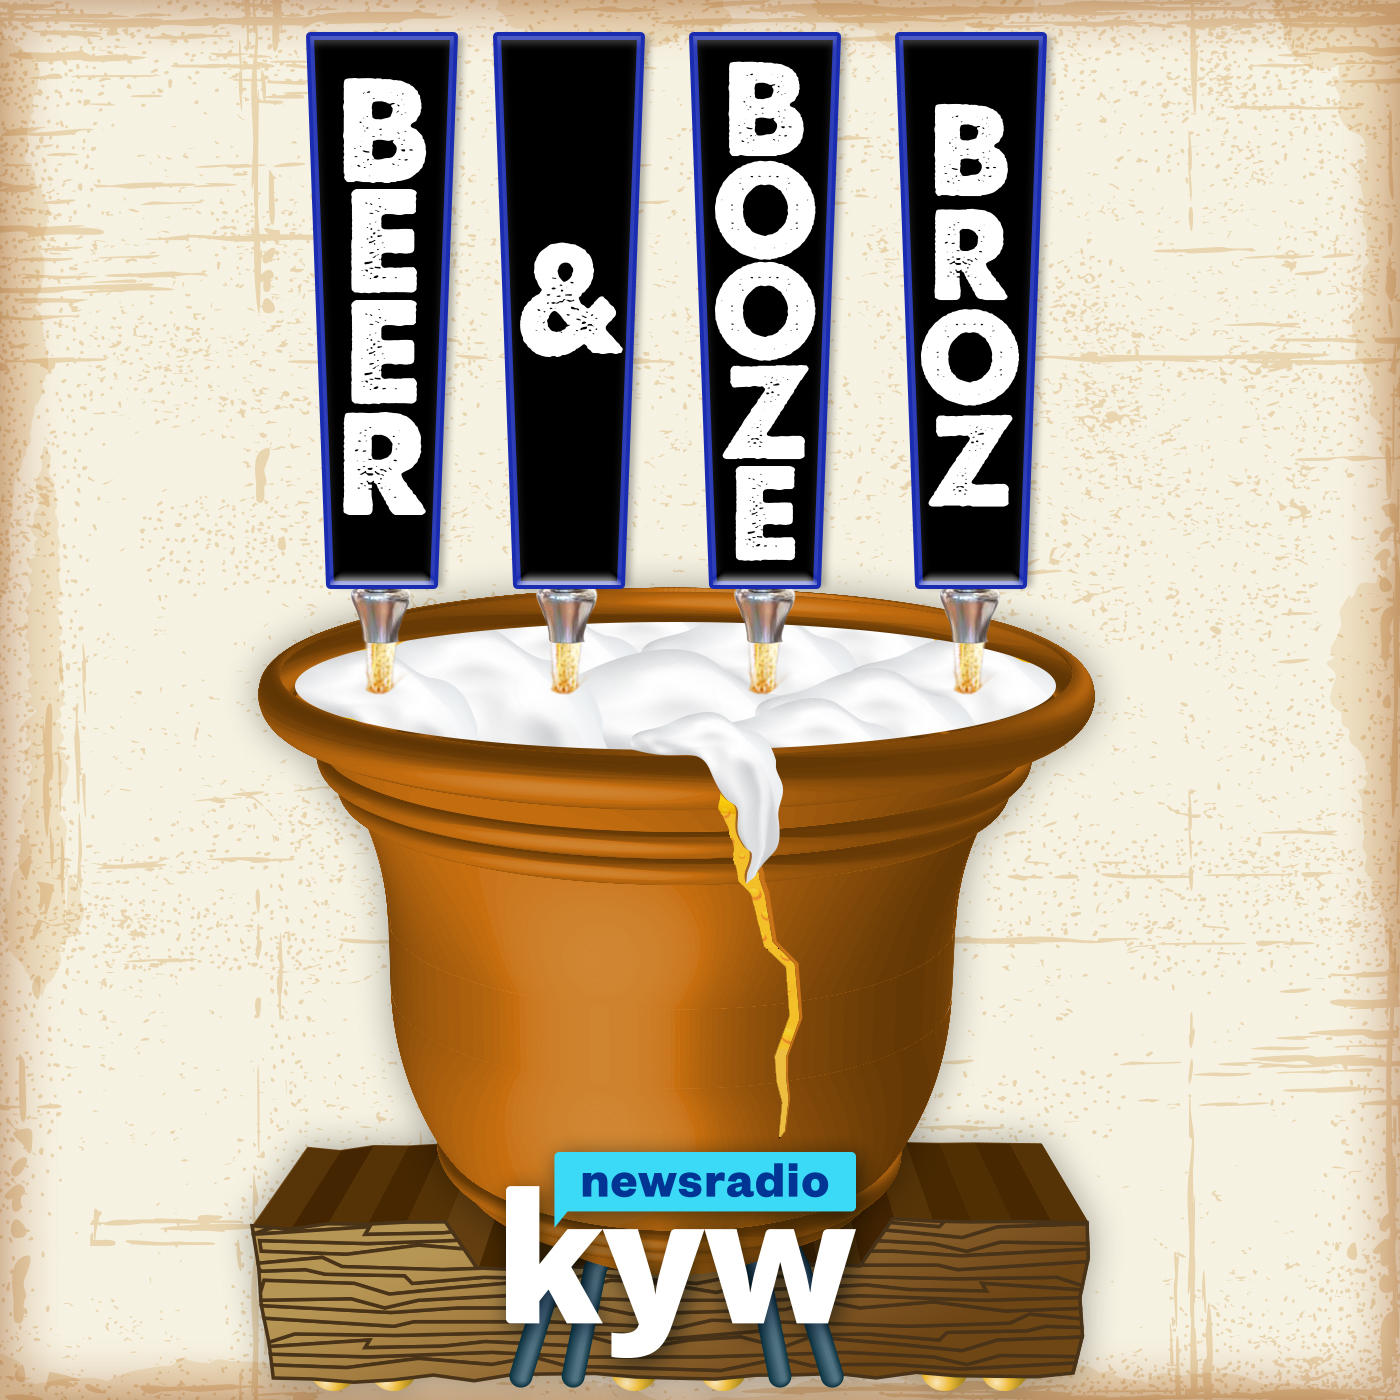 KYW Beer, Booze and Broz